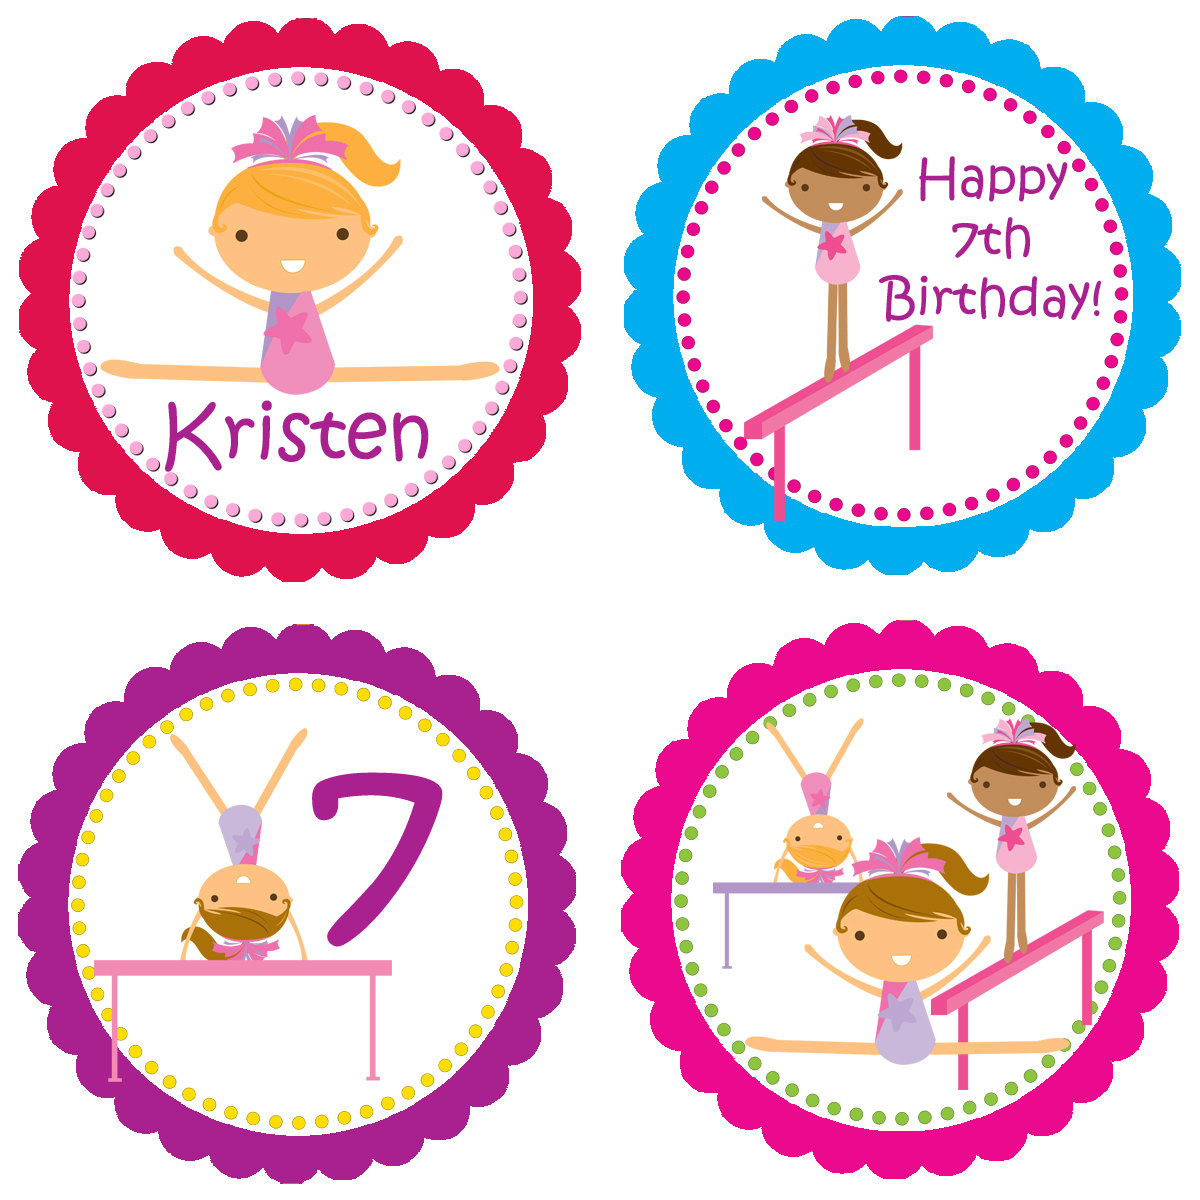 Gymnast clipart pink Free Clipart kids%20birthday%20party%20clip%20art Panda Clipart